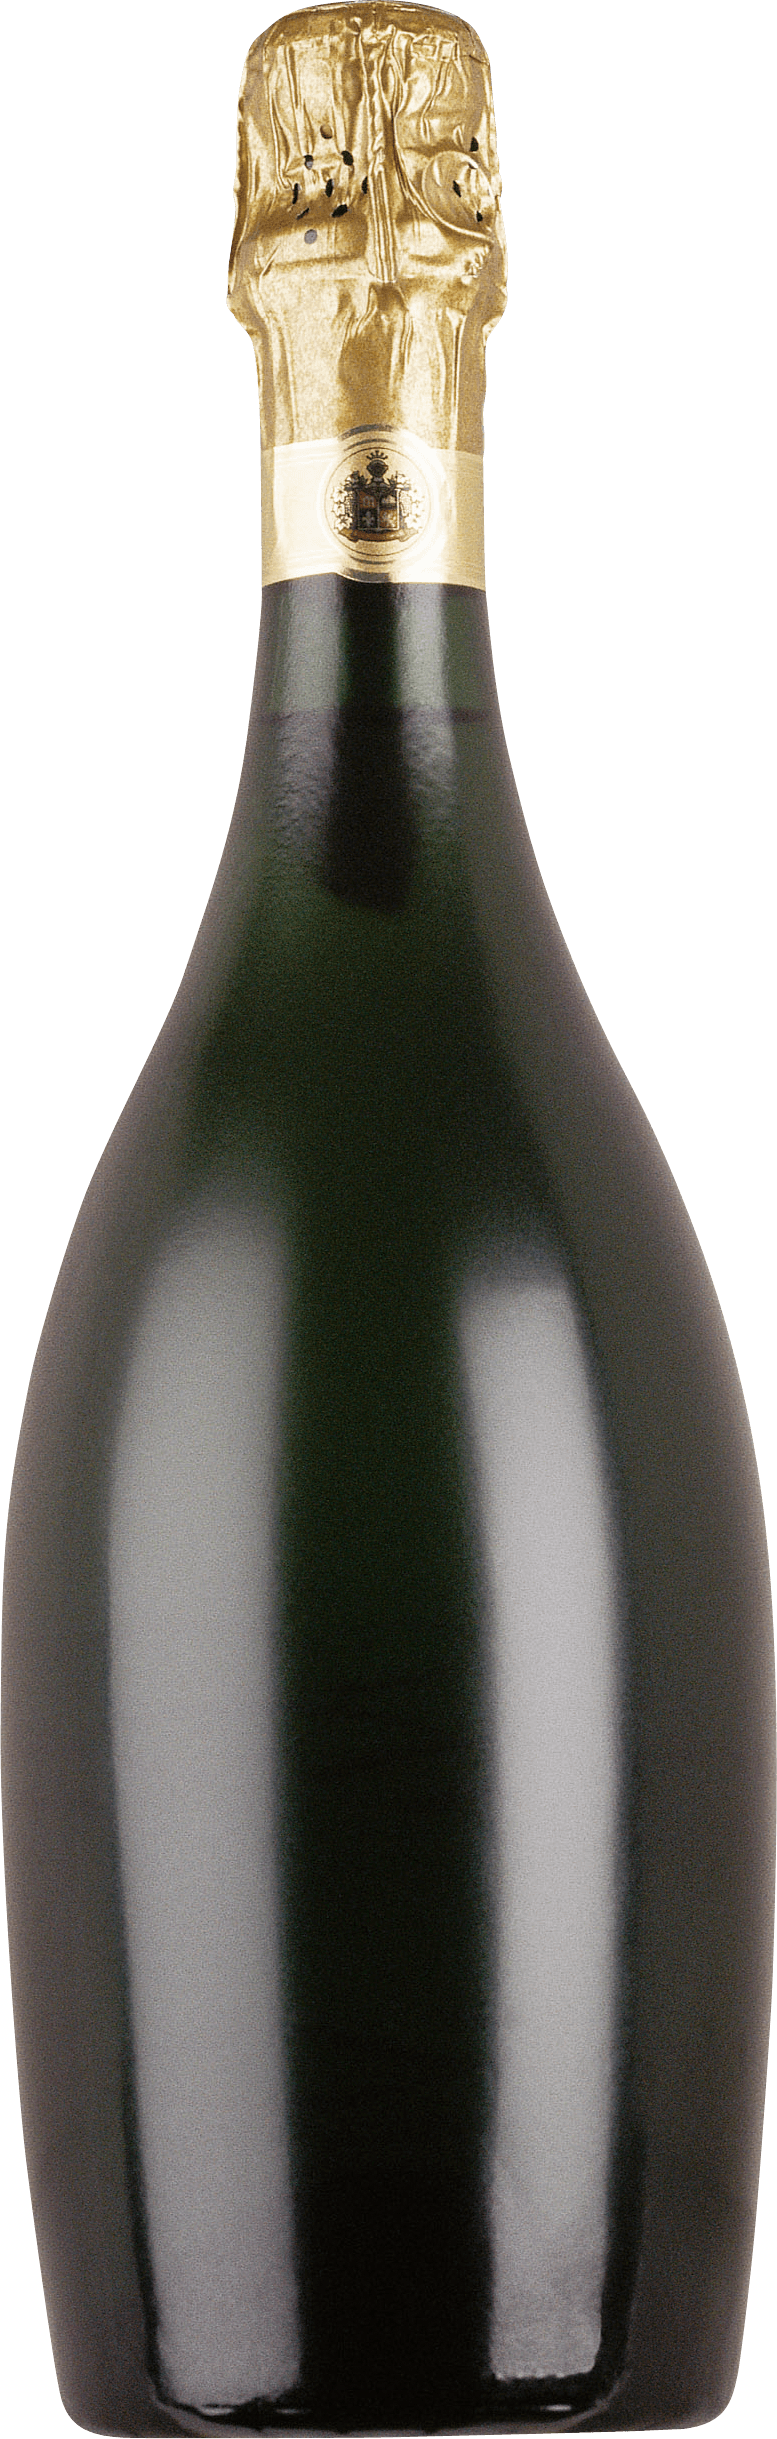 Brown Brothers Vintage Release Prosecco 2017, King Valley, Victoria